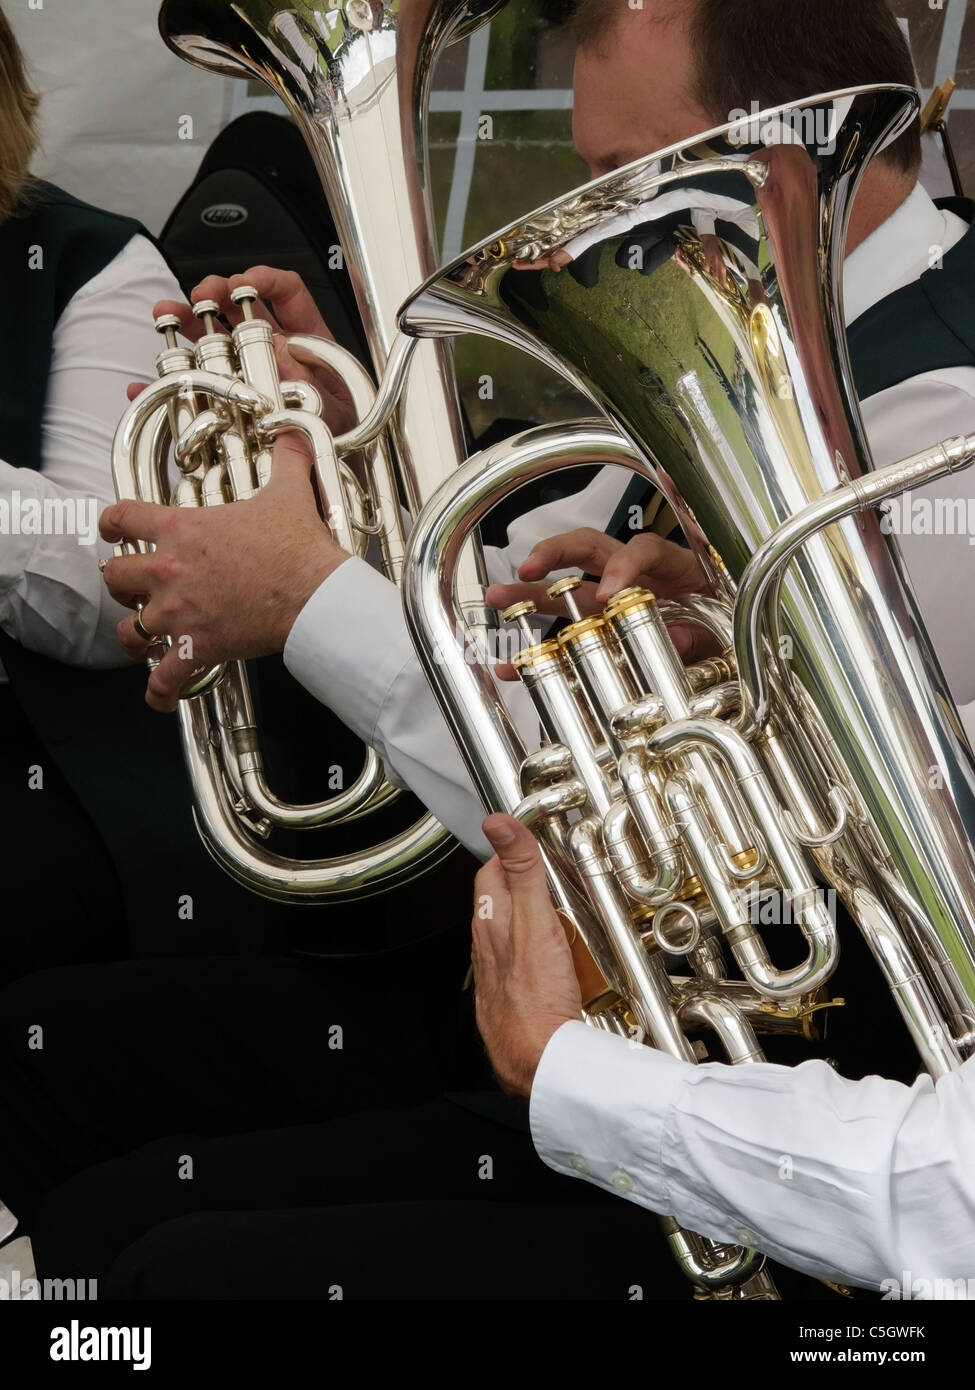 Tubas in a Brass Band-1 - Stock Image